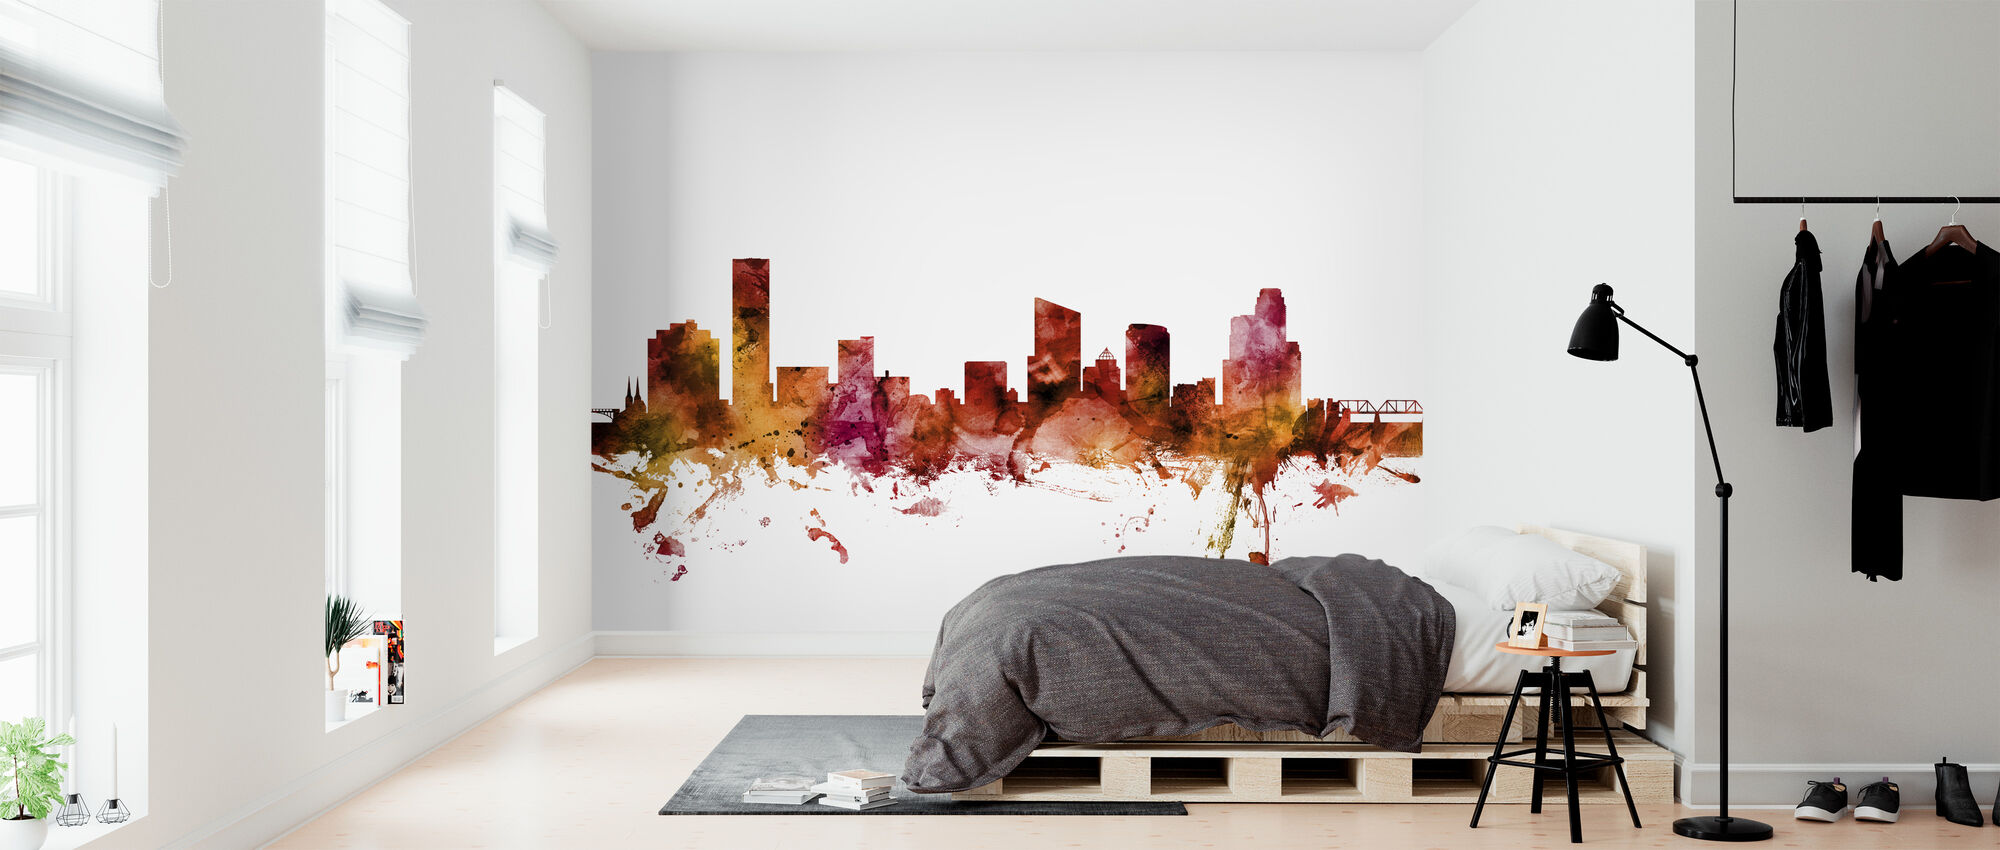 Skyline Grand Rapids Michigan - Papel pintado - Dormitorio